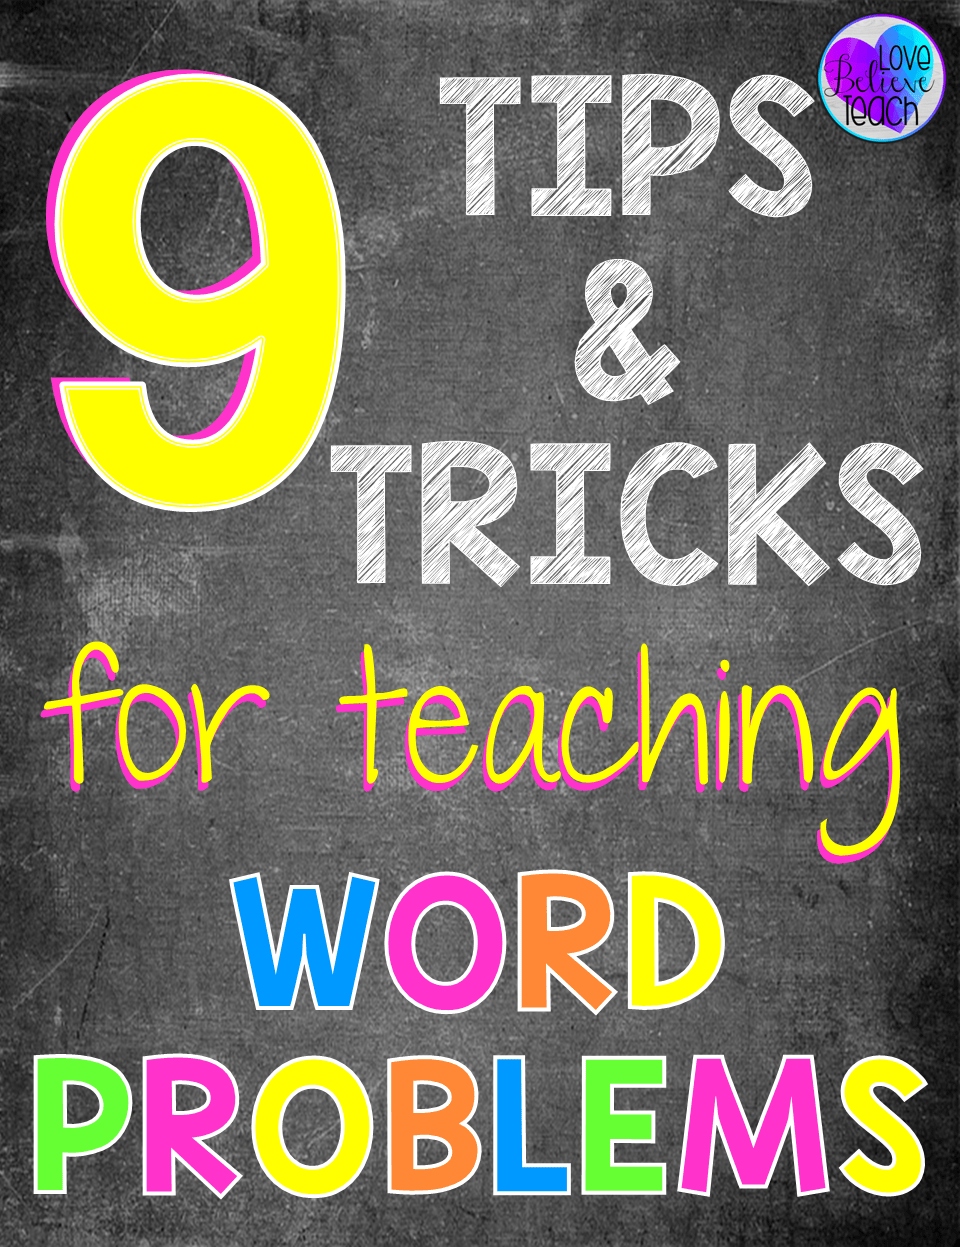 hight resolution of 9 Tips and Tricks for Teaching Word Problems - Minds in Bloom